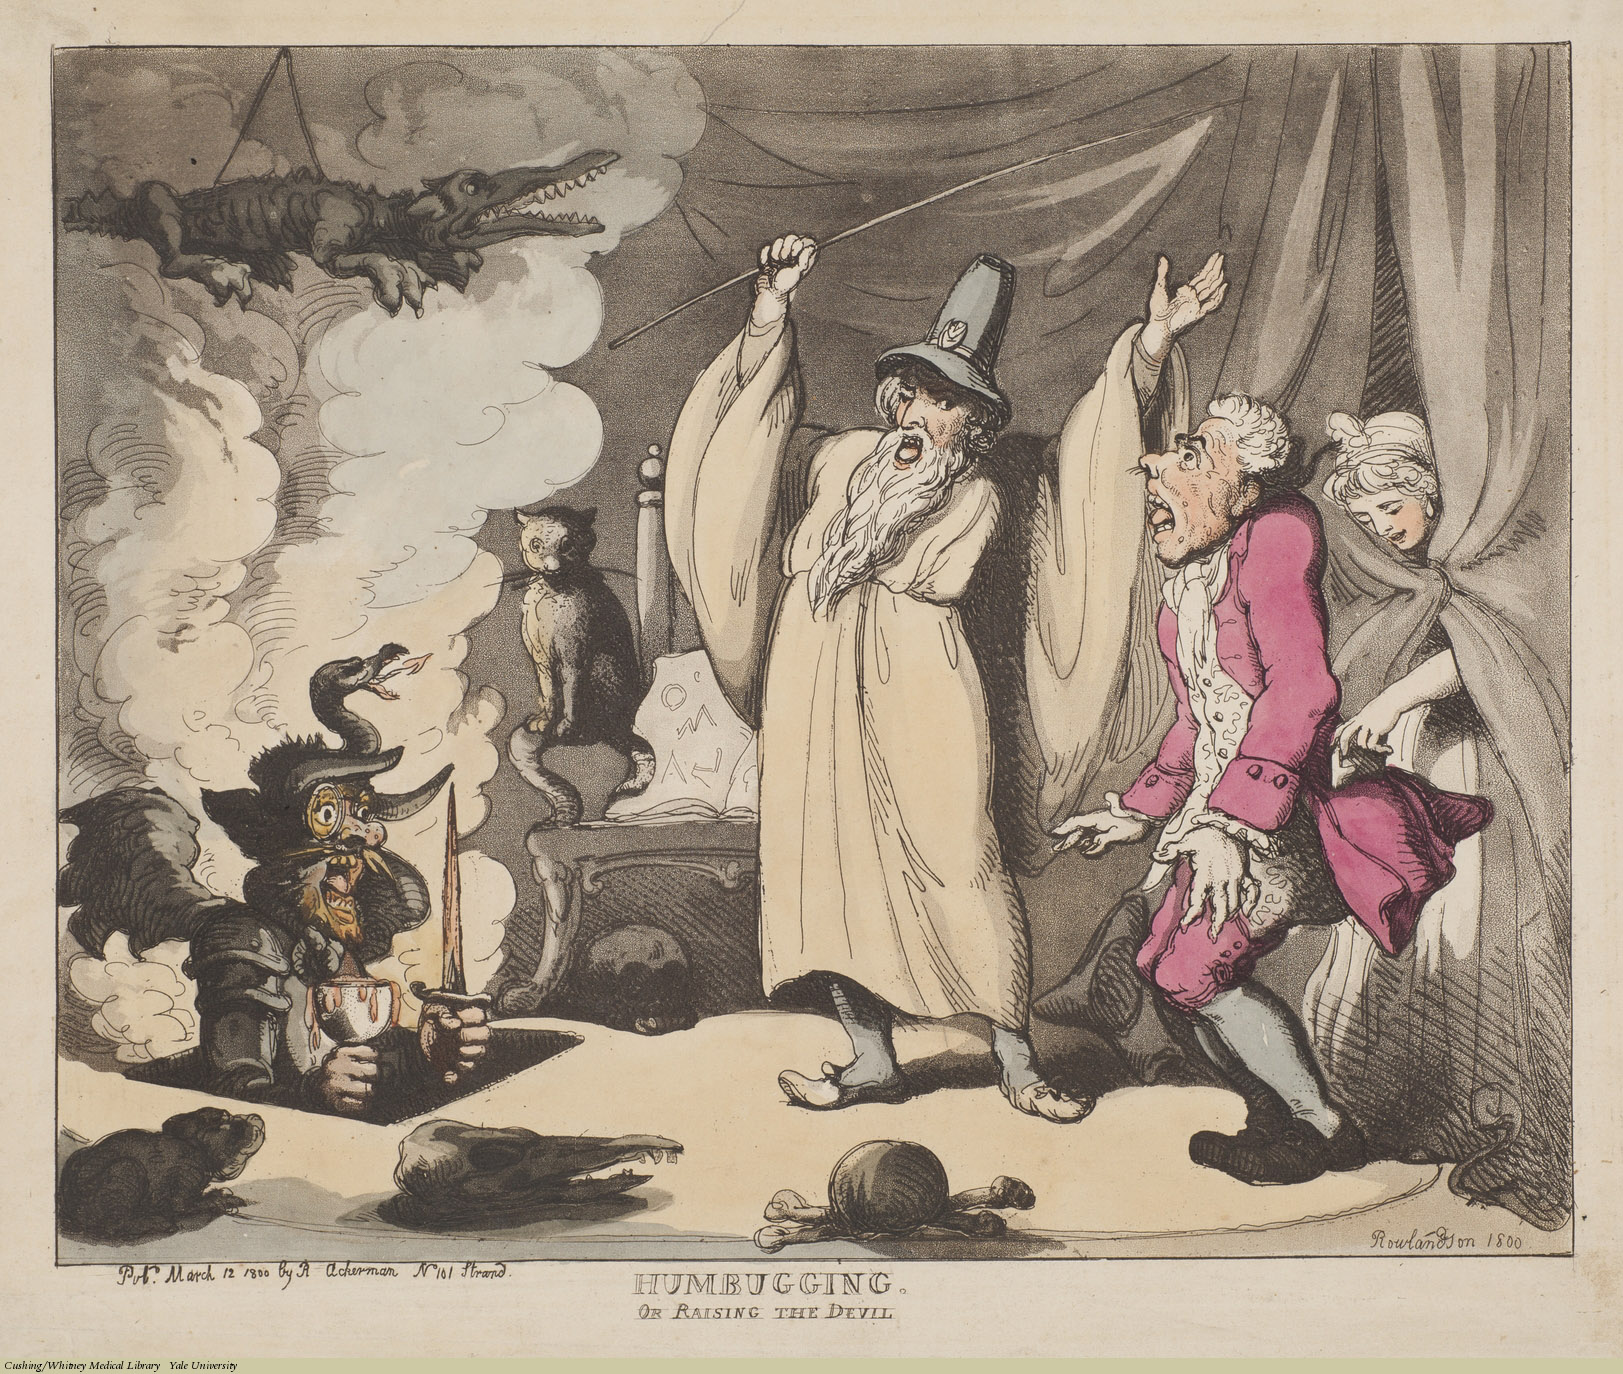 Humbugging. Or Raising The Devil. Thomas Rowlandson, Aquatint coloured, 1800. Subject: Wizards, Confidence Trickster, Pickpocket.